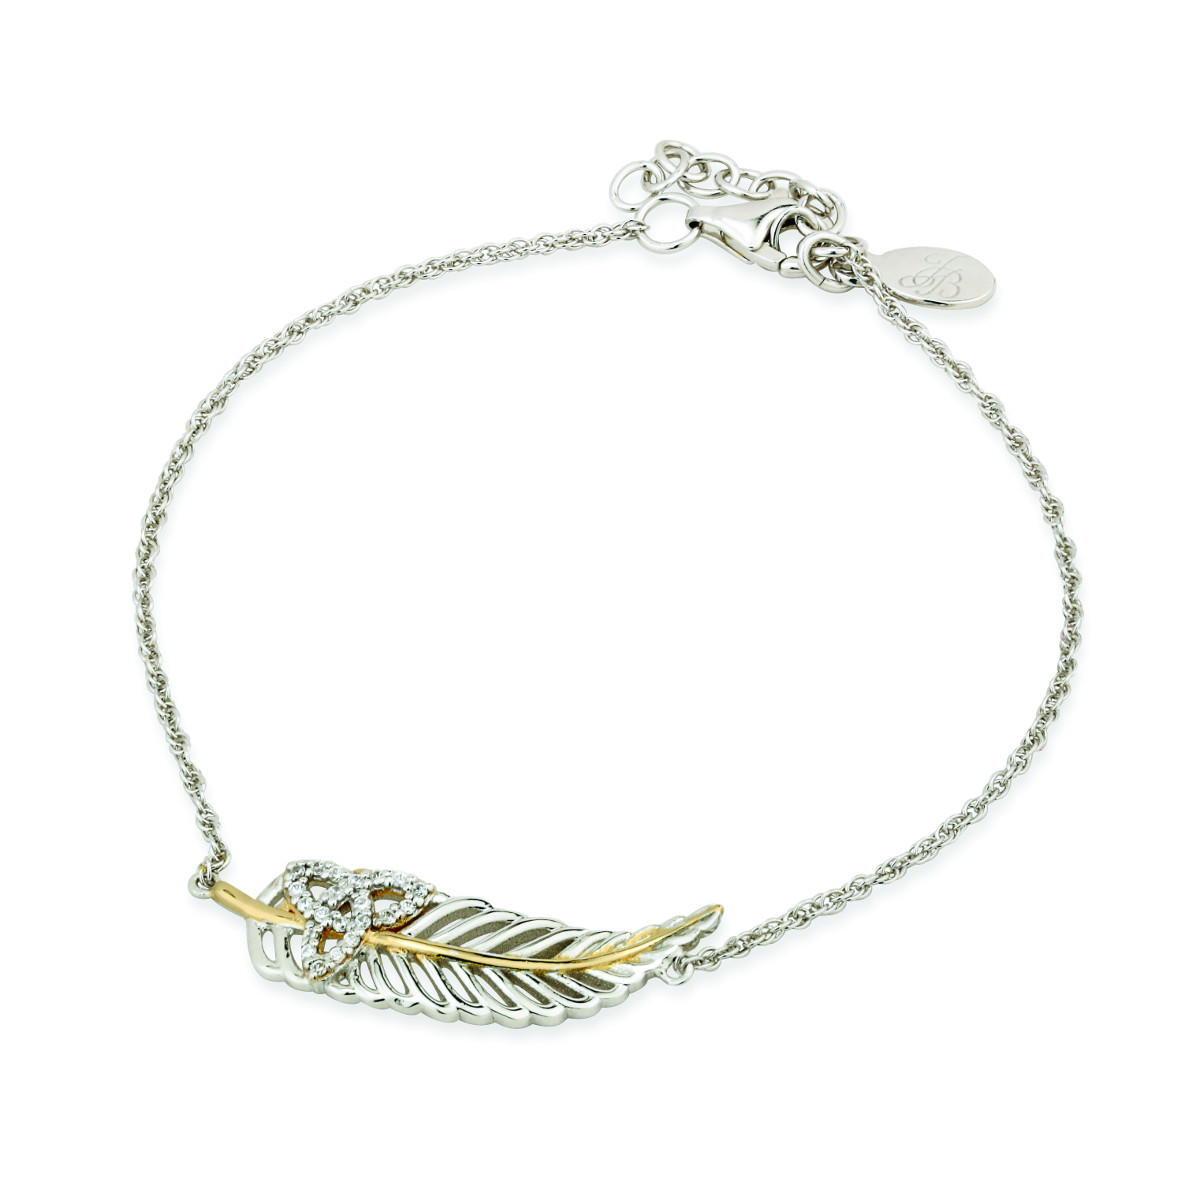 Jean Butler Jewelry - Sterling Silver with 18k Yellow Gold Plate CZ Trinity Knot Irish Bracelet